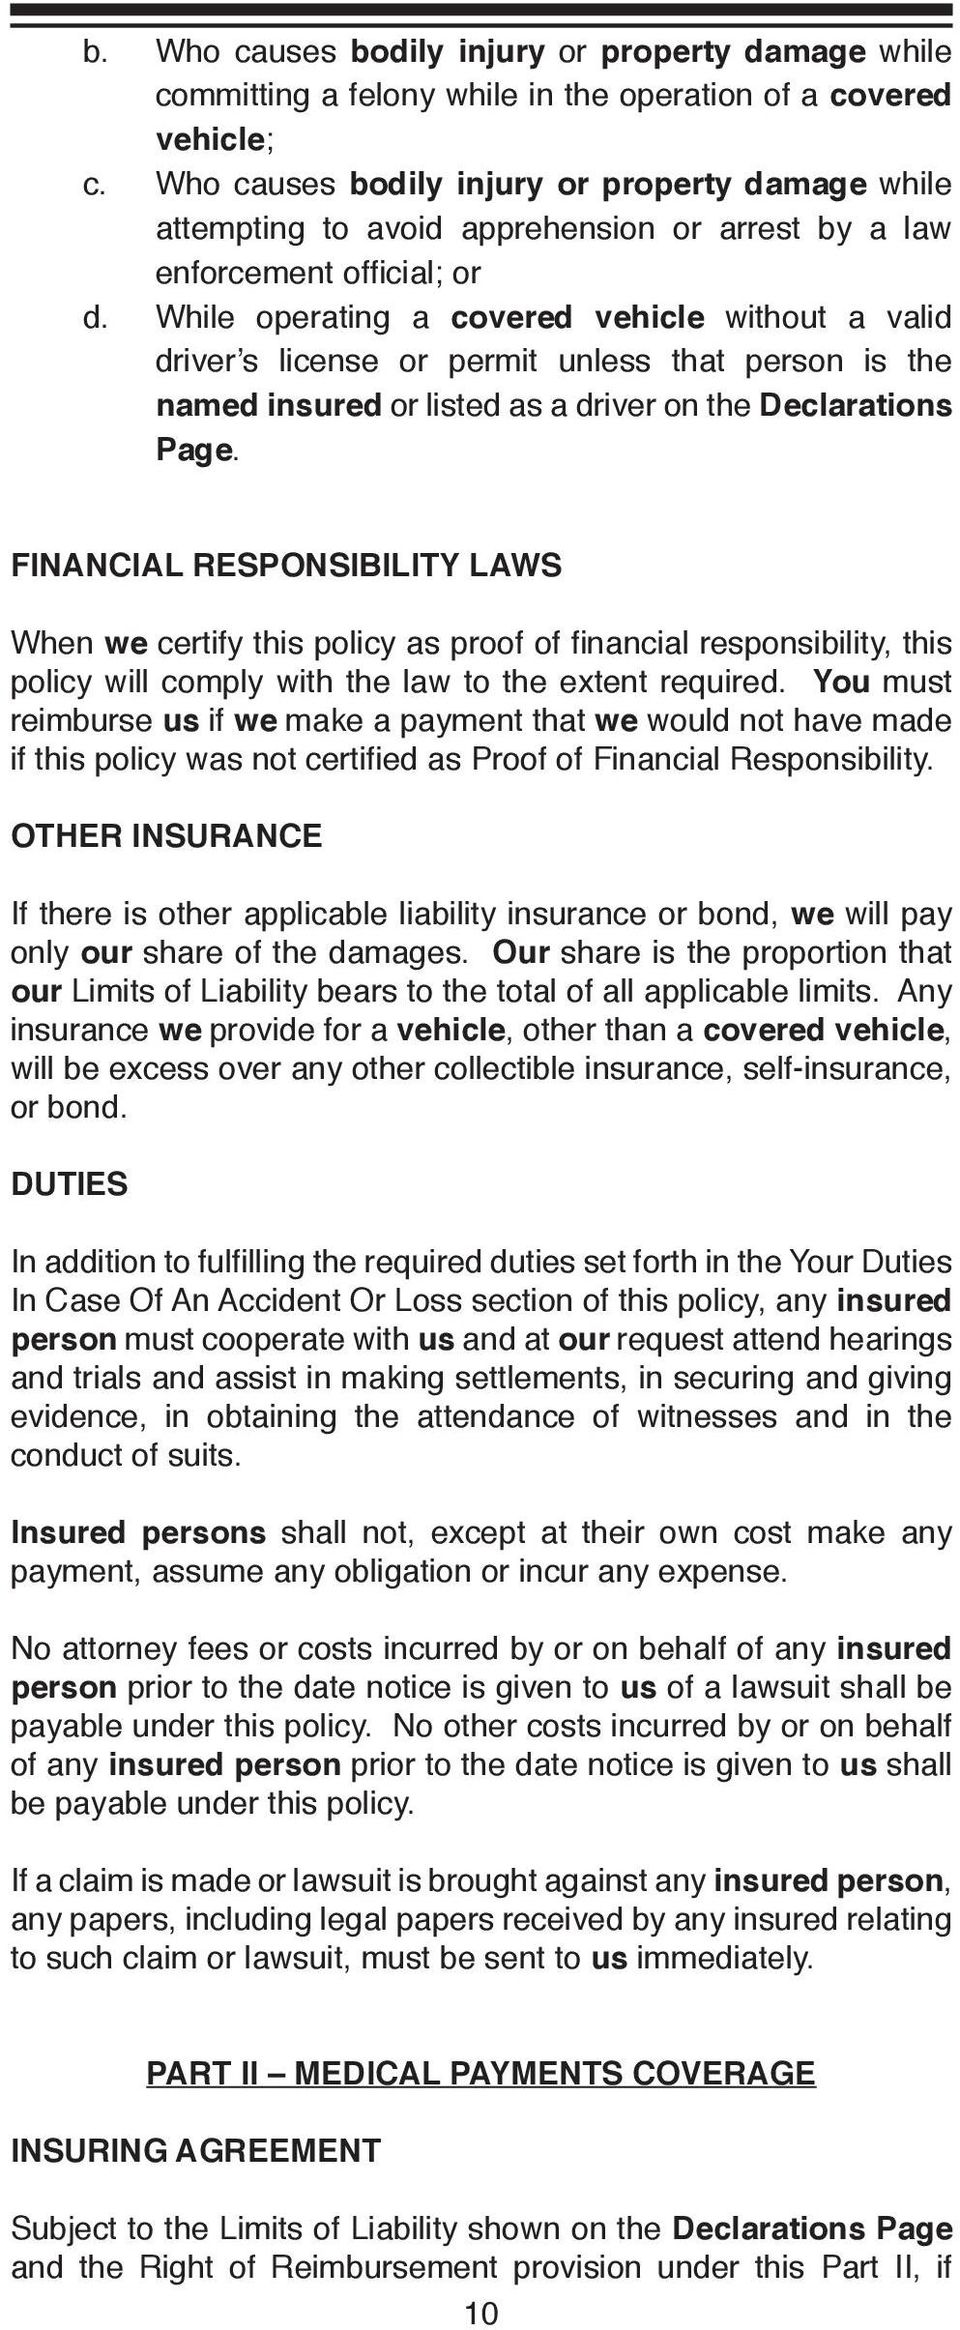 While operating a covered vehicle without a valid driver s license or permit unless that person is the named insured or listed as a driver on the Declarations Page.